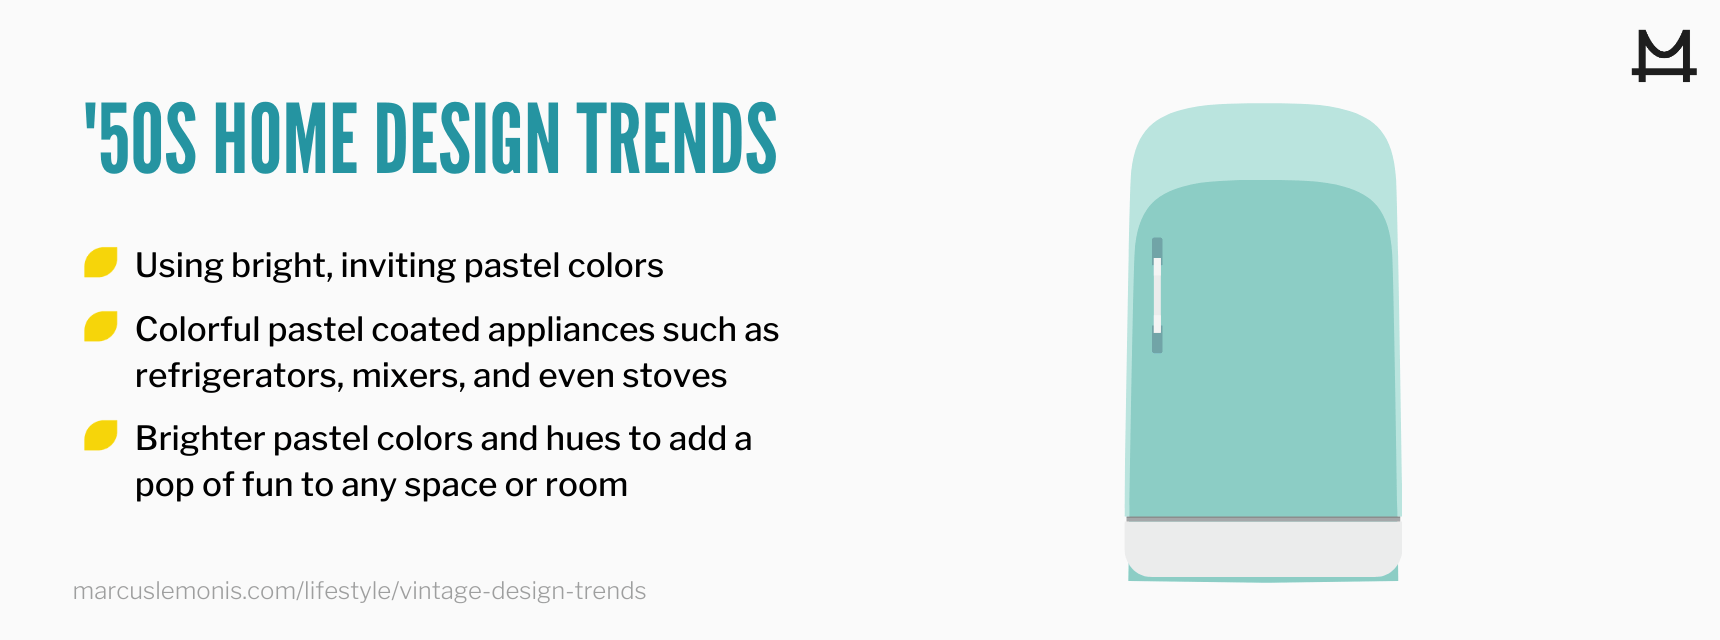 List of 50's home trends making a comeback.